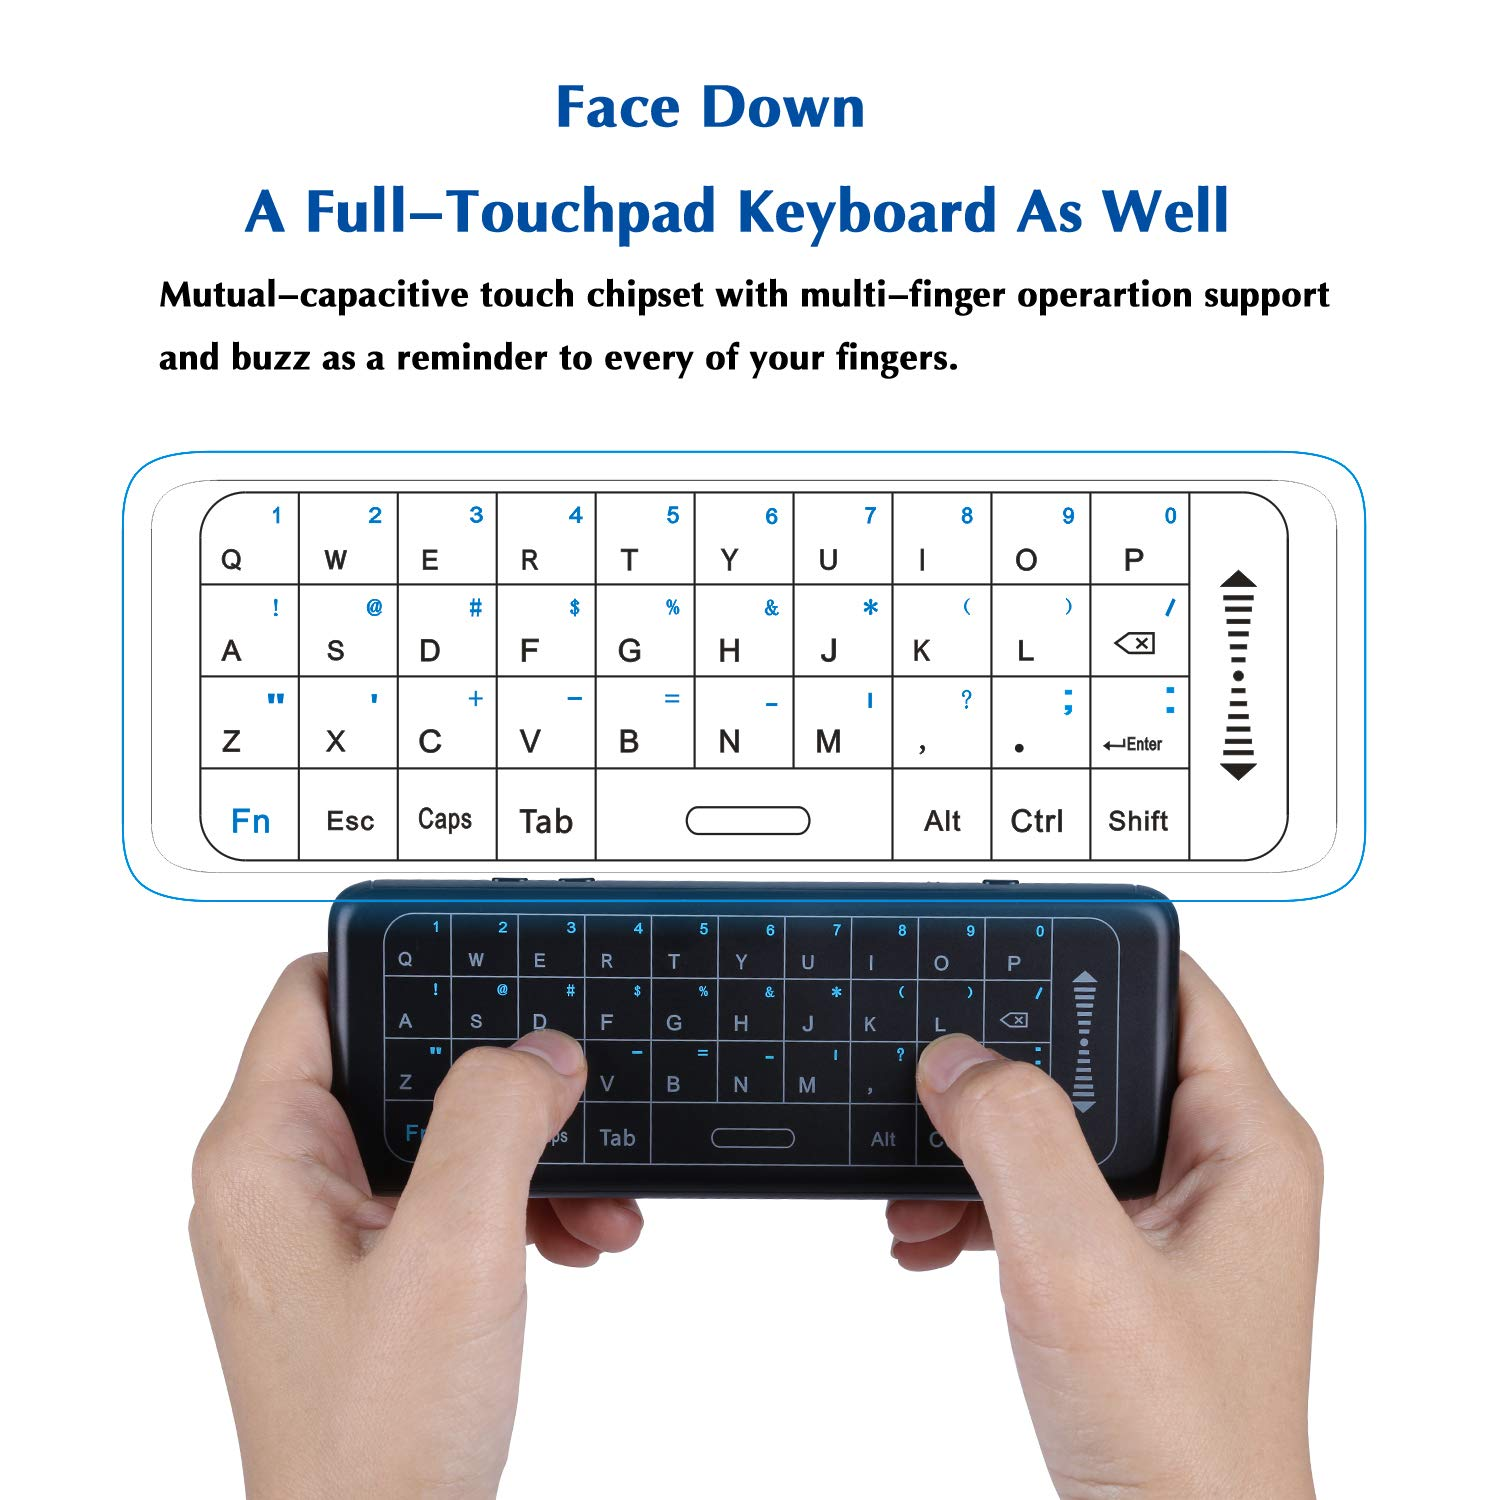 DMYCO Mini Wireless Keyboard with Air Remote - 2.4Ghz Wireless Touchpad Keyboard air Mouse, Air Remote Control, IR Learning, USB Rechargeable, For Android TV Box, HTPC, IPTV, PC, Pad and More Devices